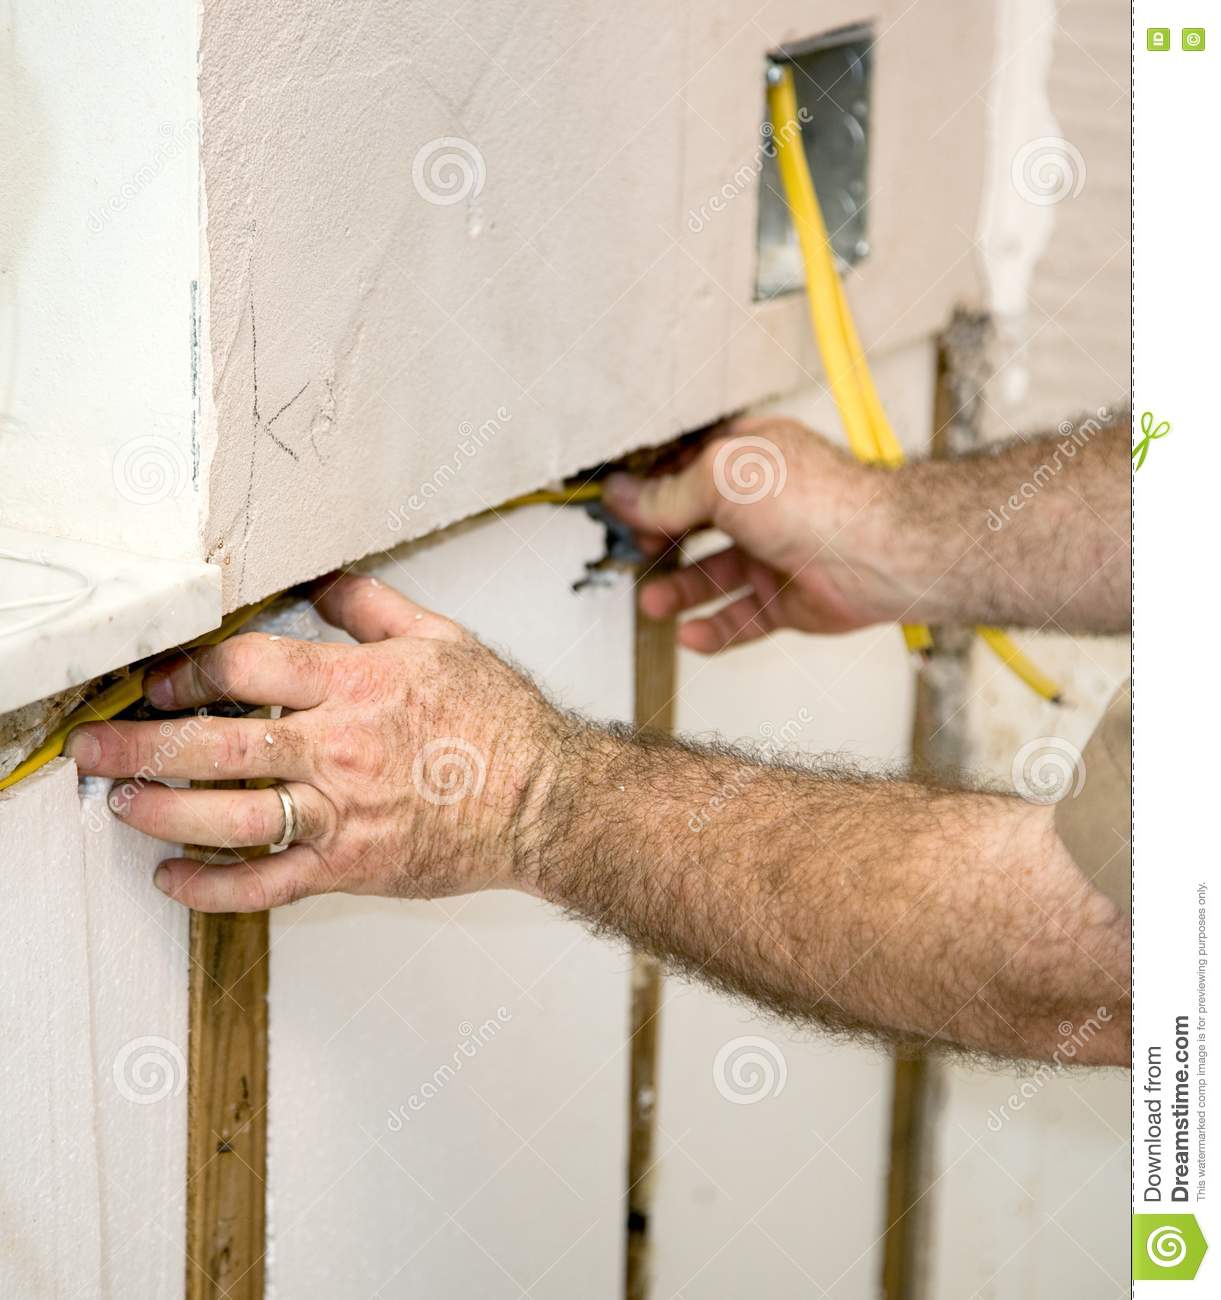 Electrician Wiring The Walls Picture. Image: 6417291 on